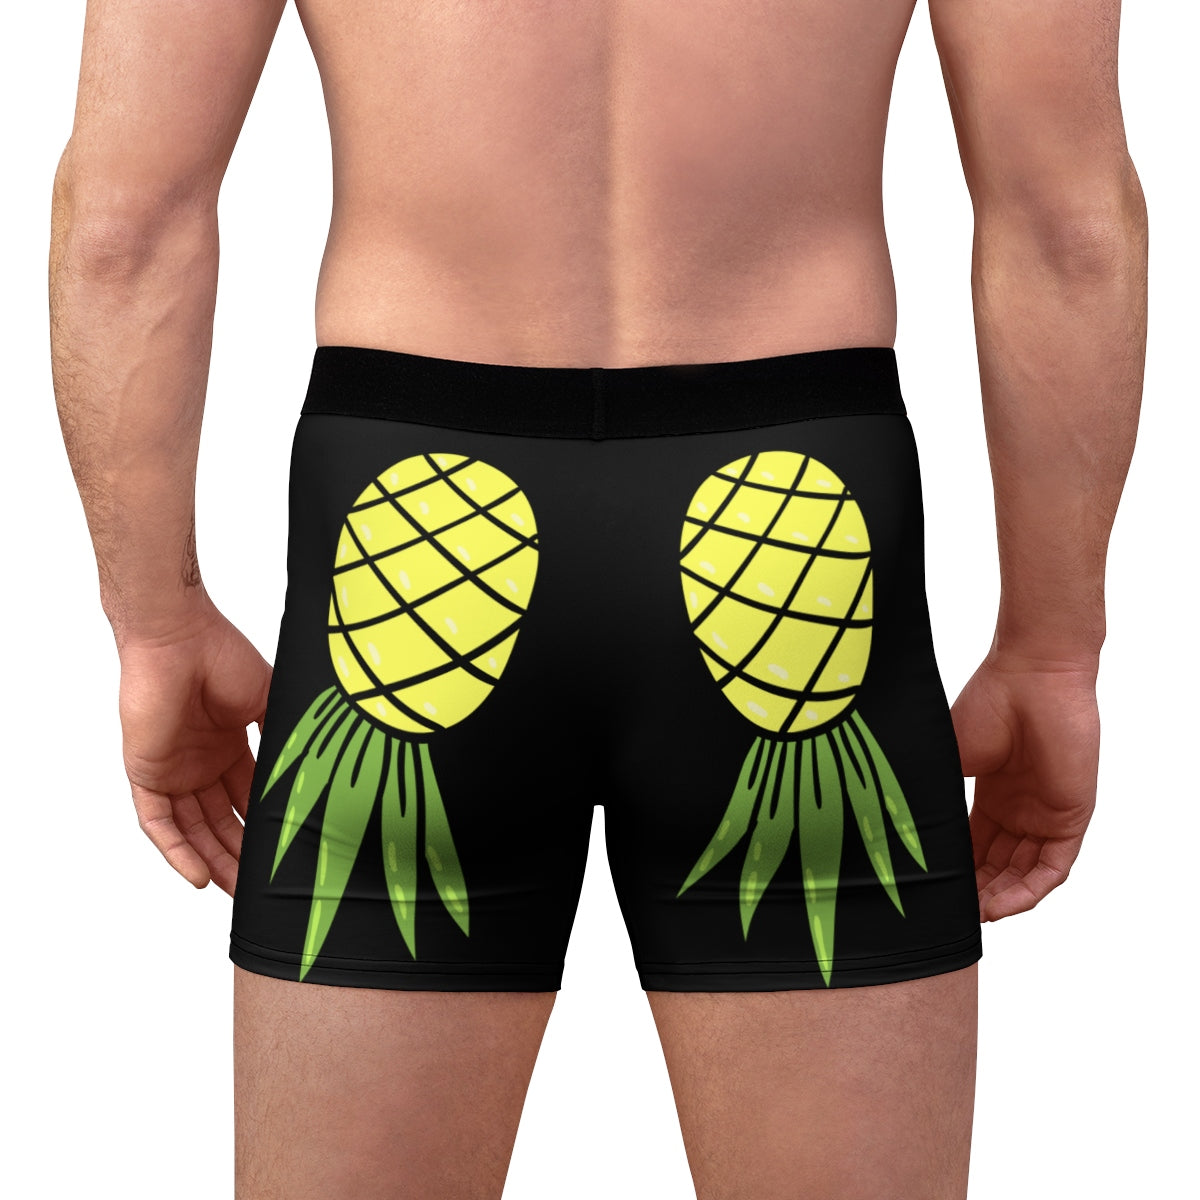 Upside Down Pineapple Men's Boxer Briefs